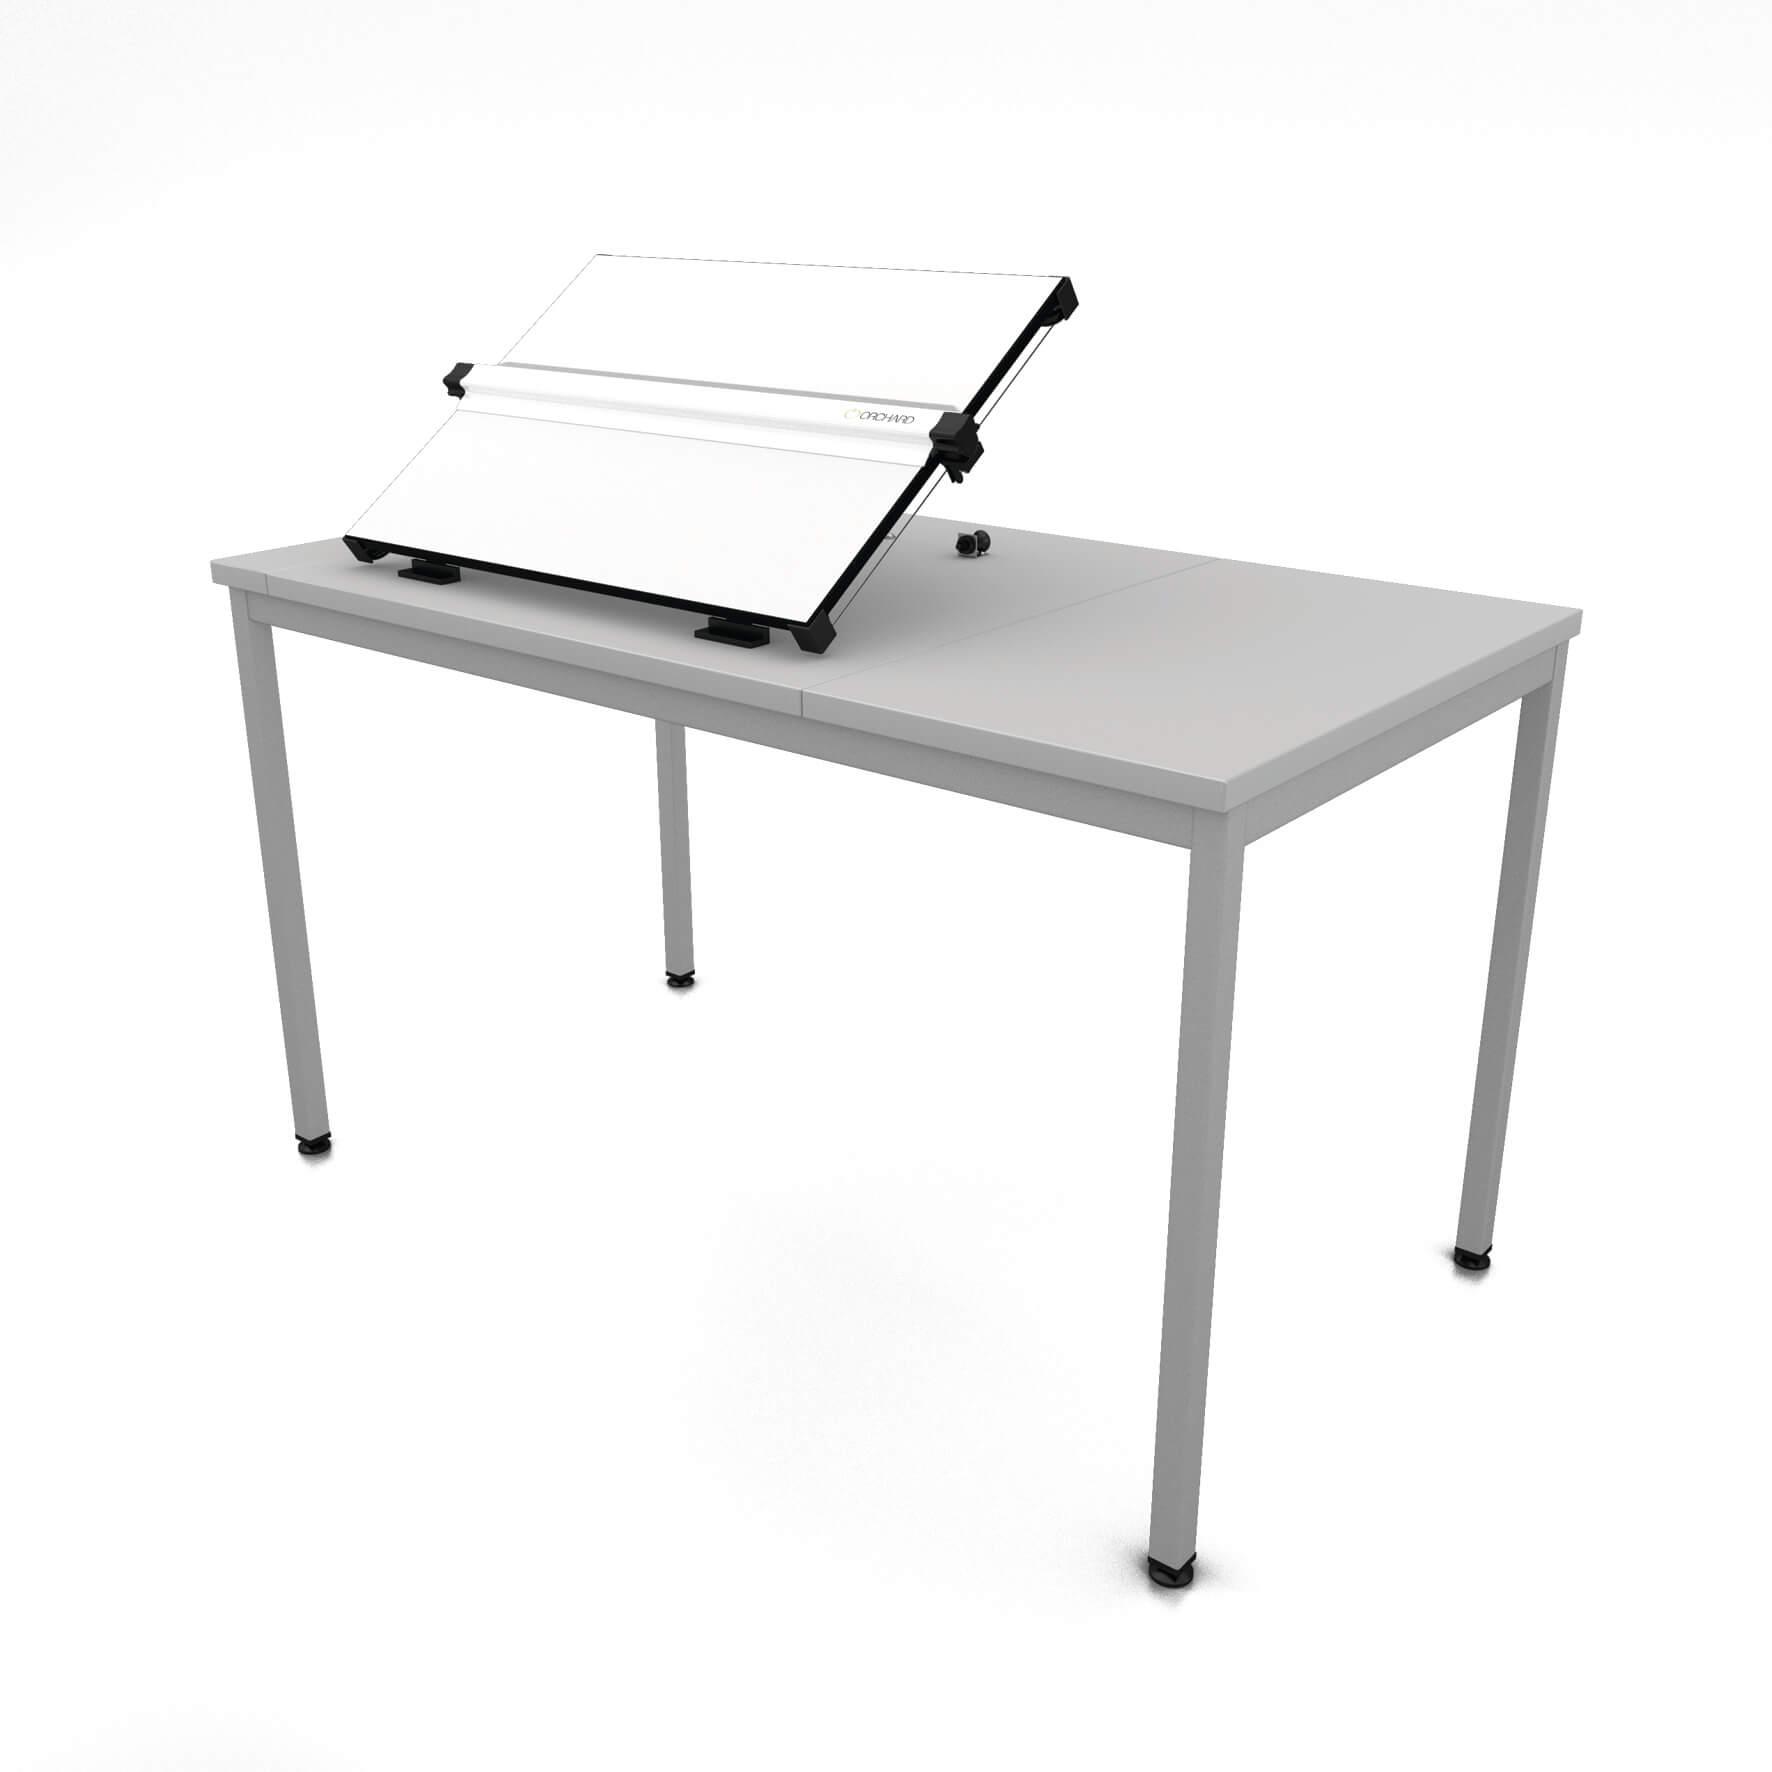 Flip-Top Drawing Desk A2